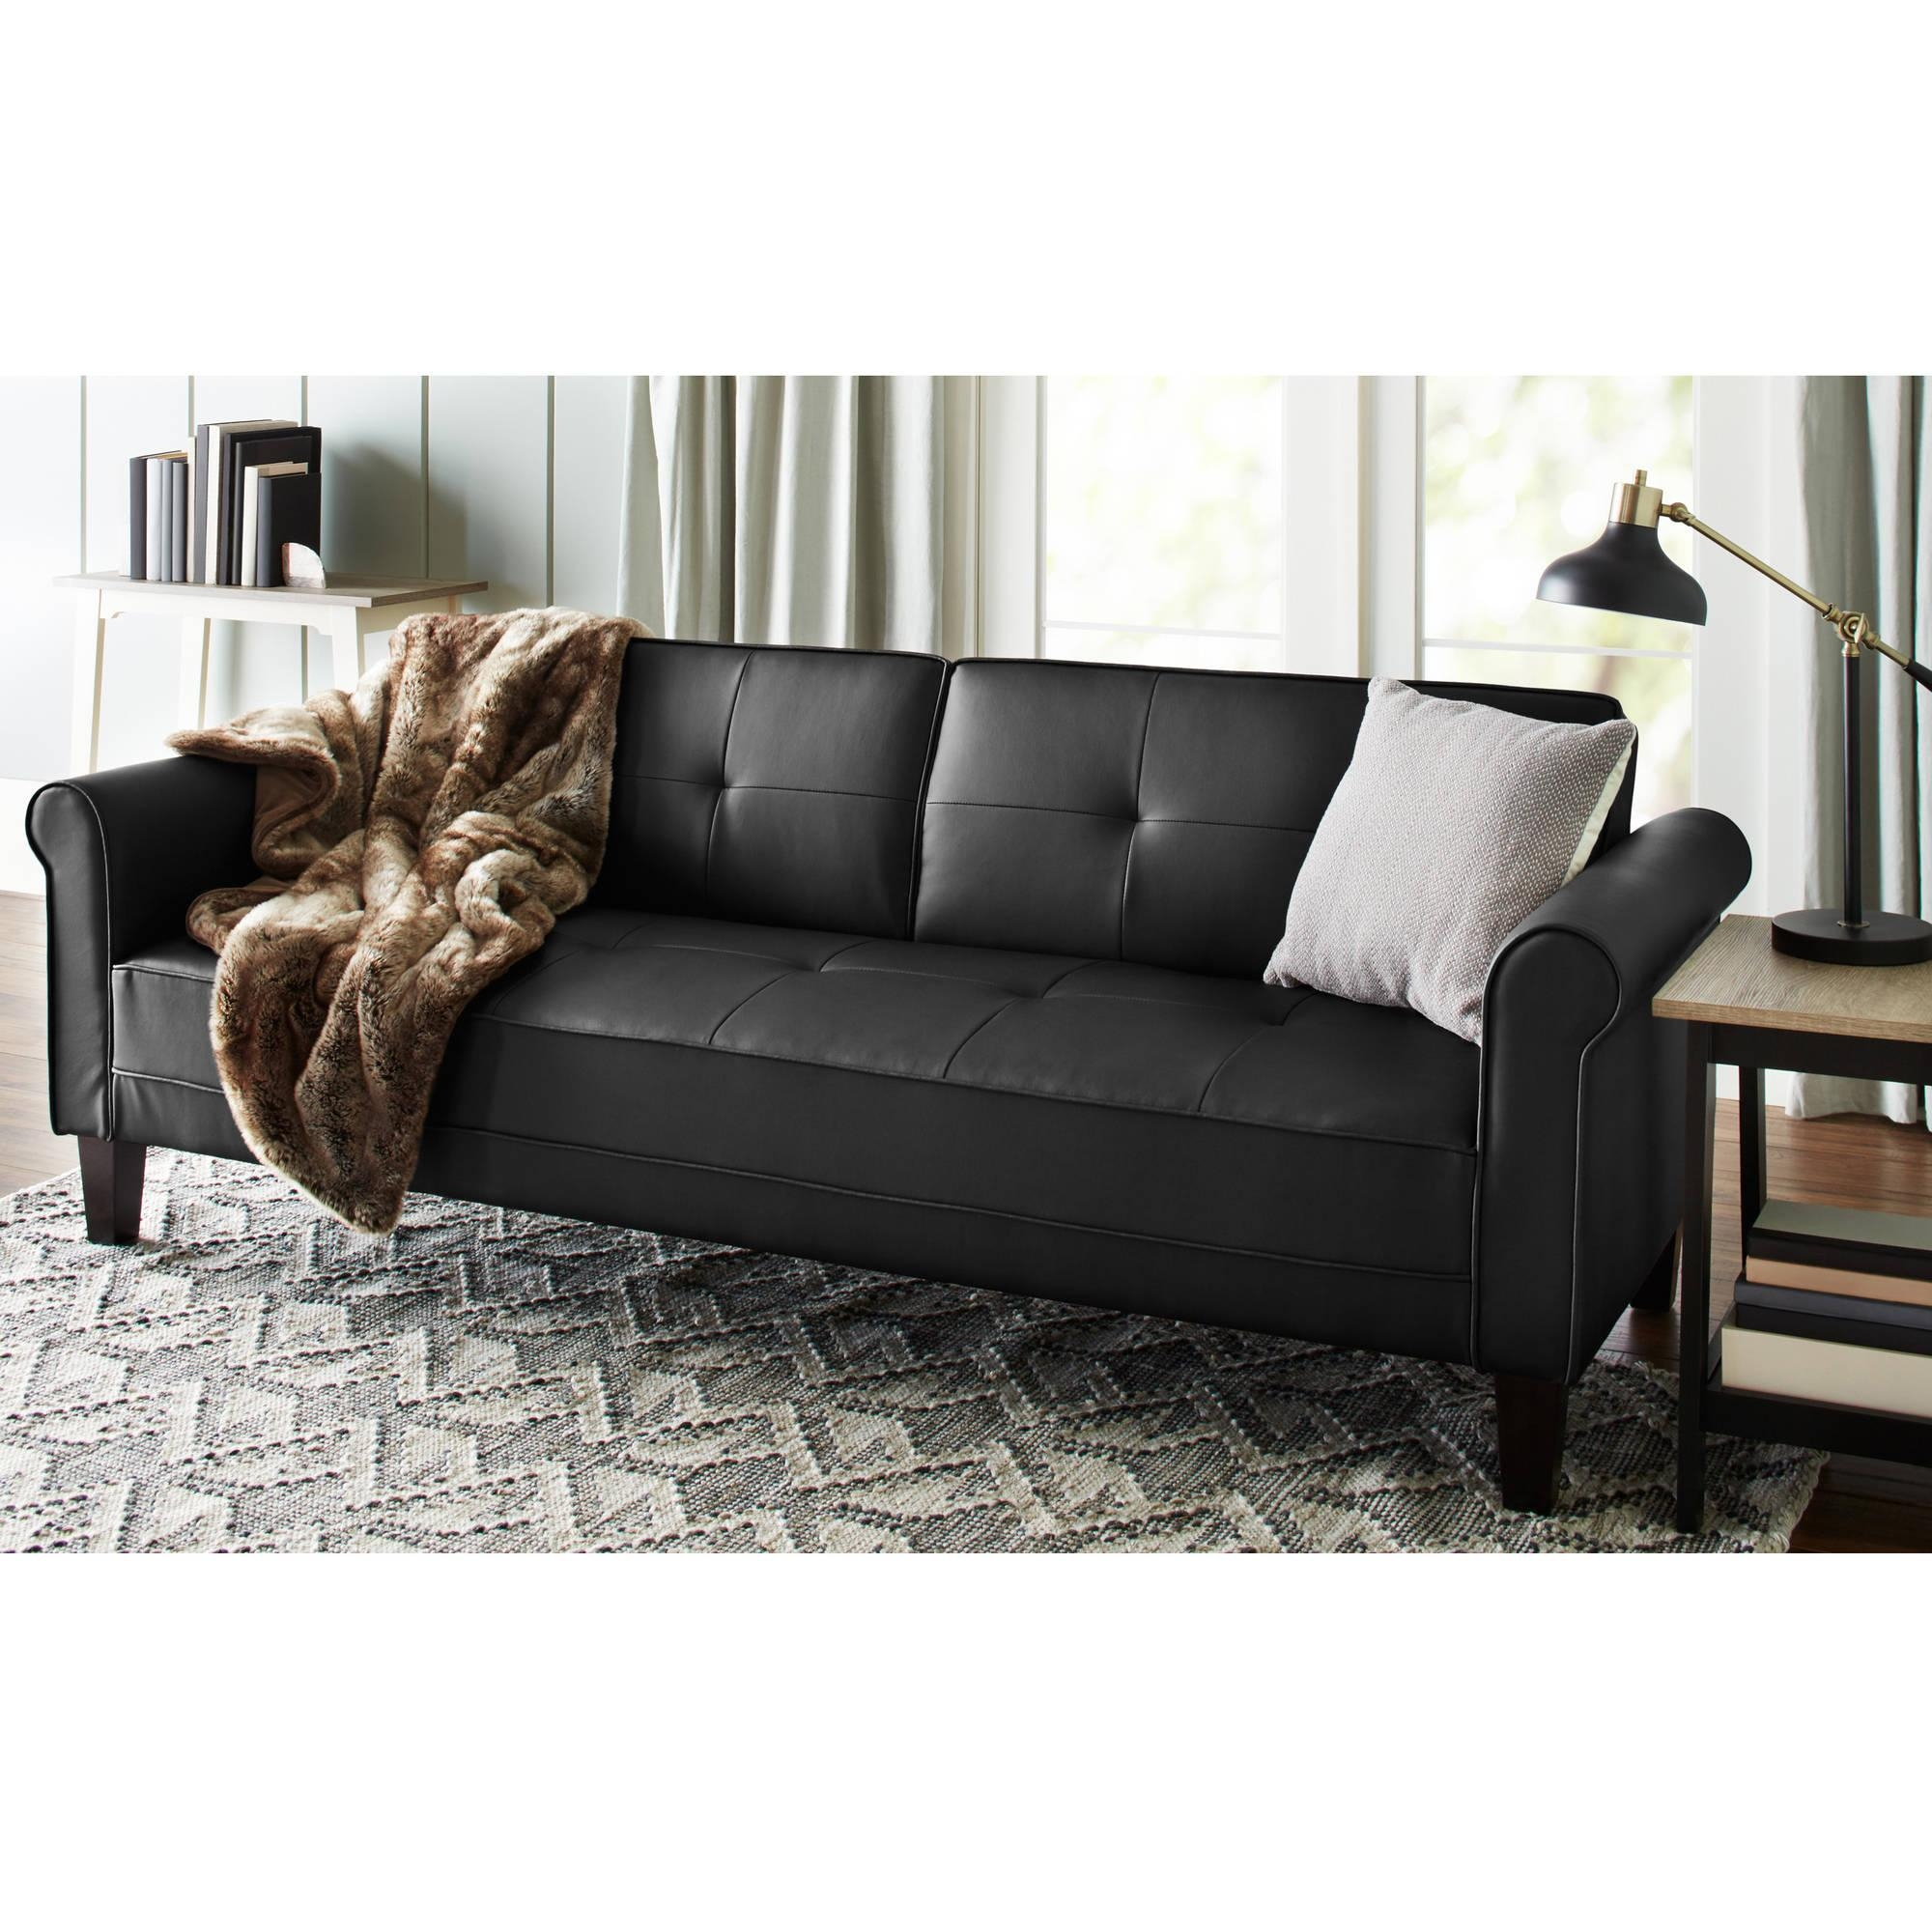 Leather Faux Fold Down Futon Sofa Bed Couch Sleeper Furniture For Faux Leather Futon Sofas (View 11 of 20)